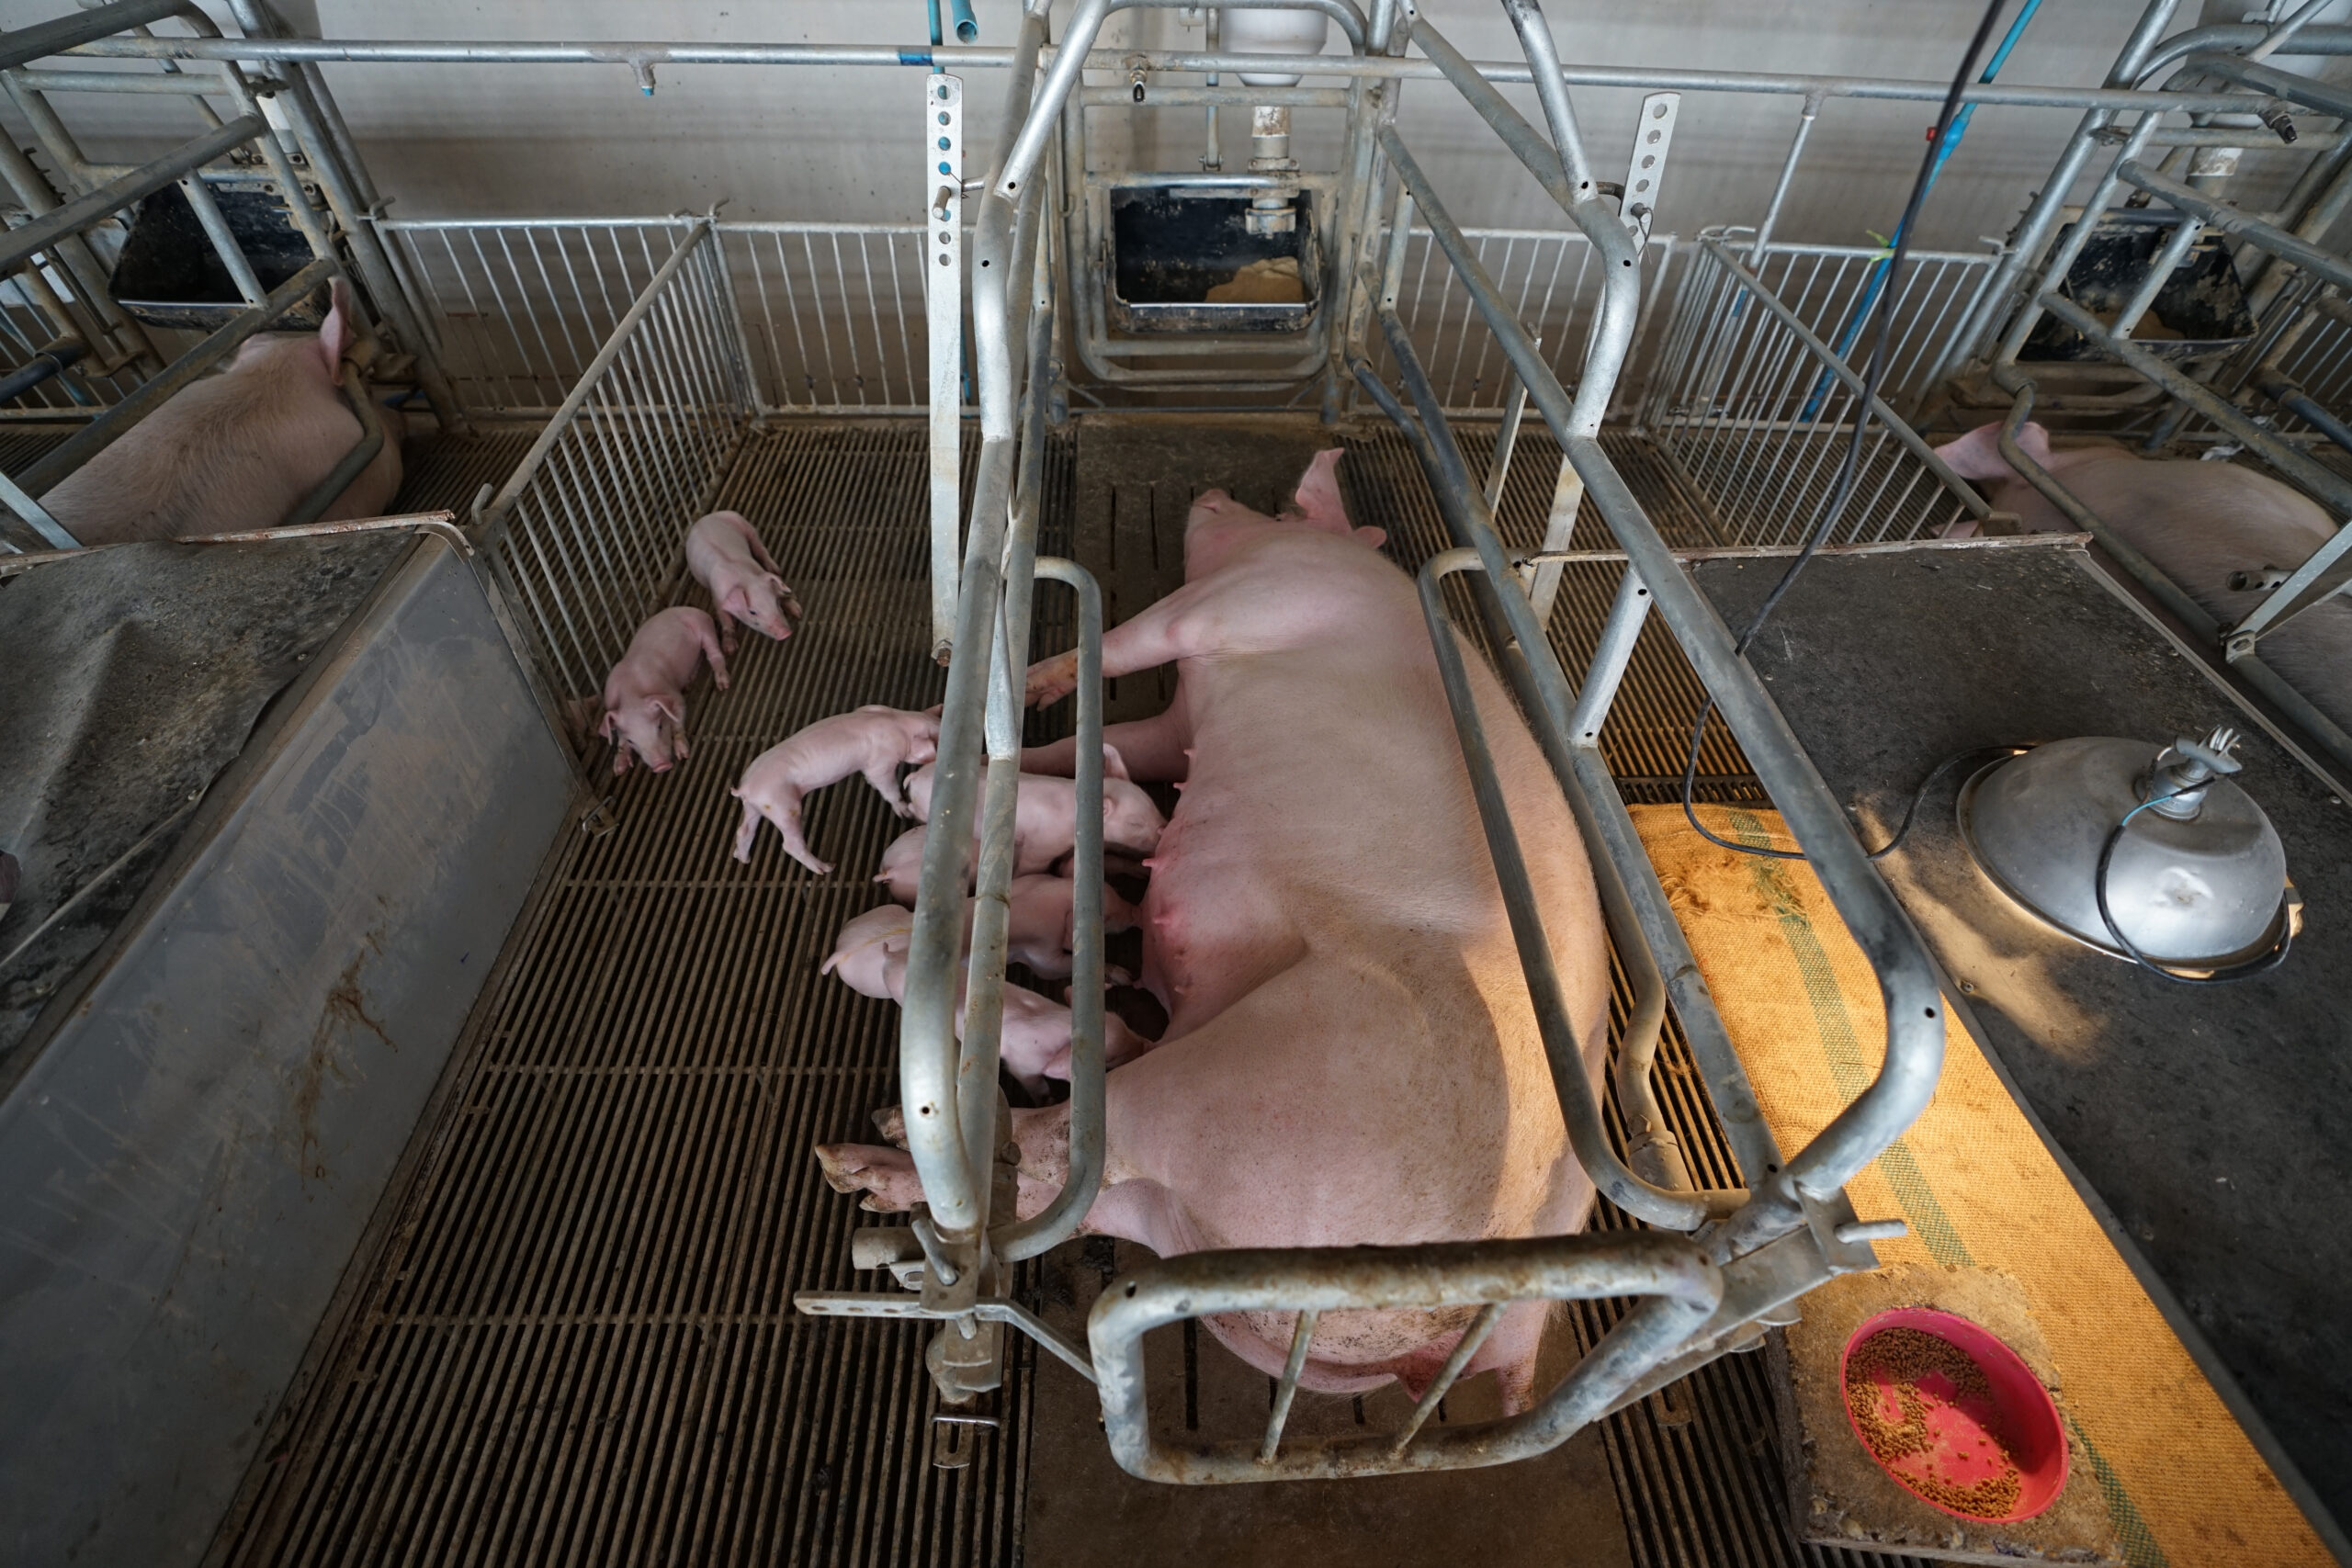 mother pig confined and unable to move in a factory farm